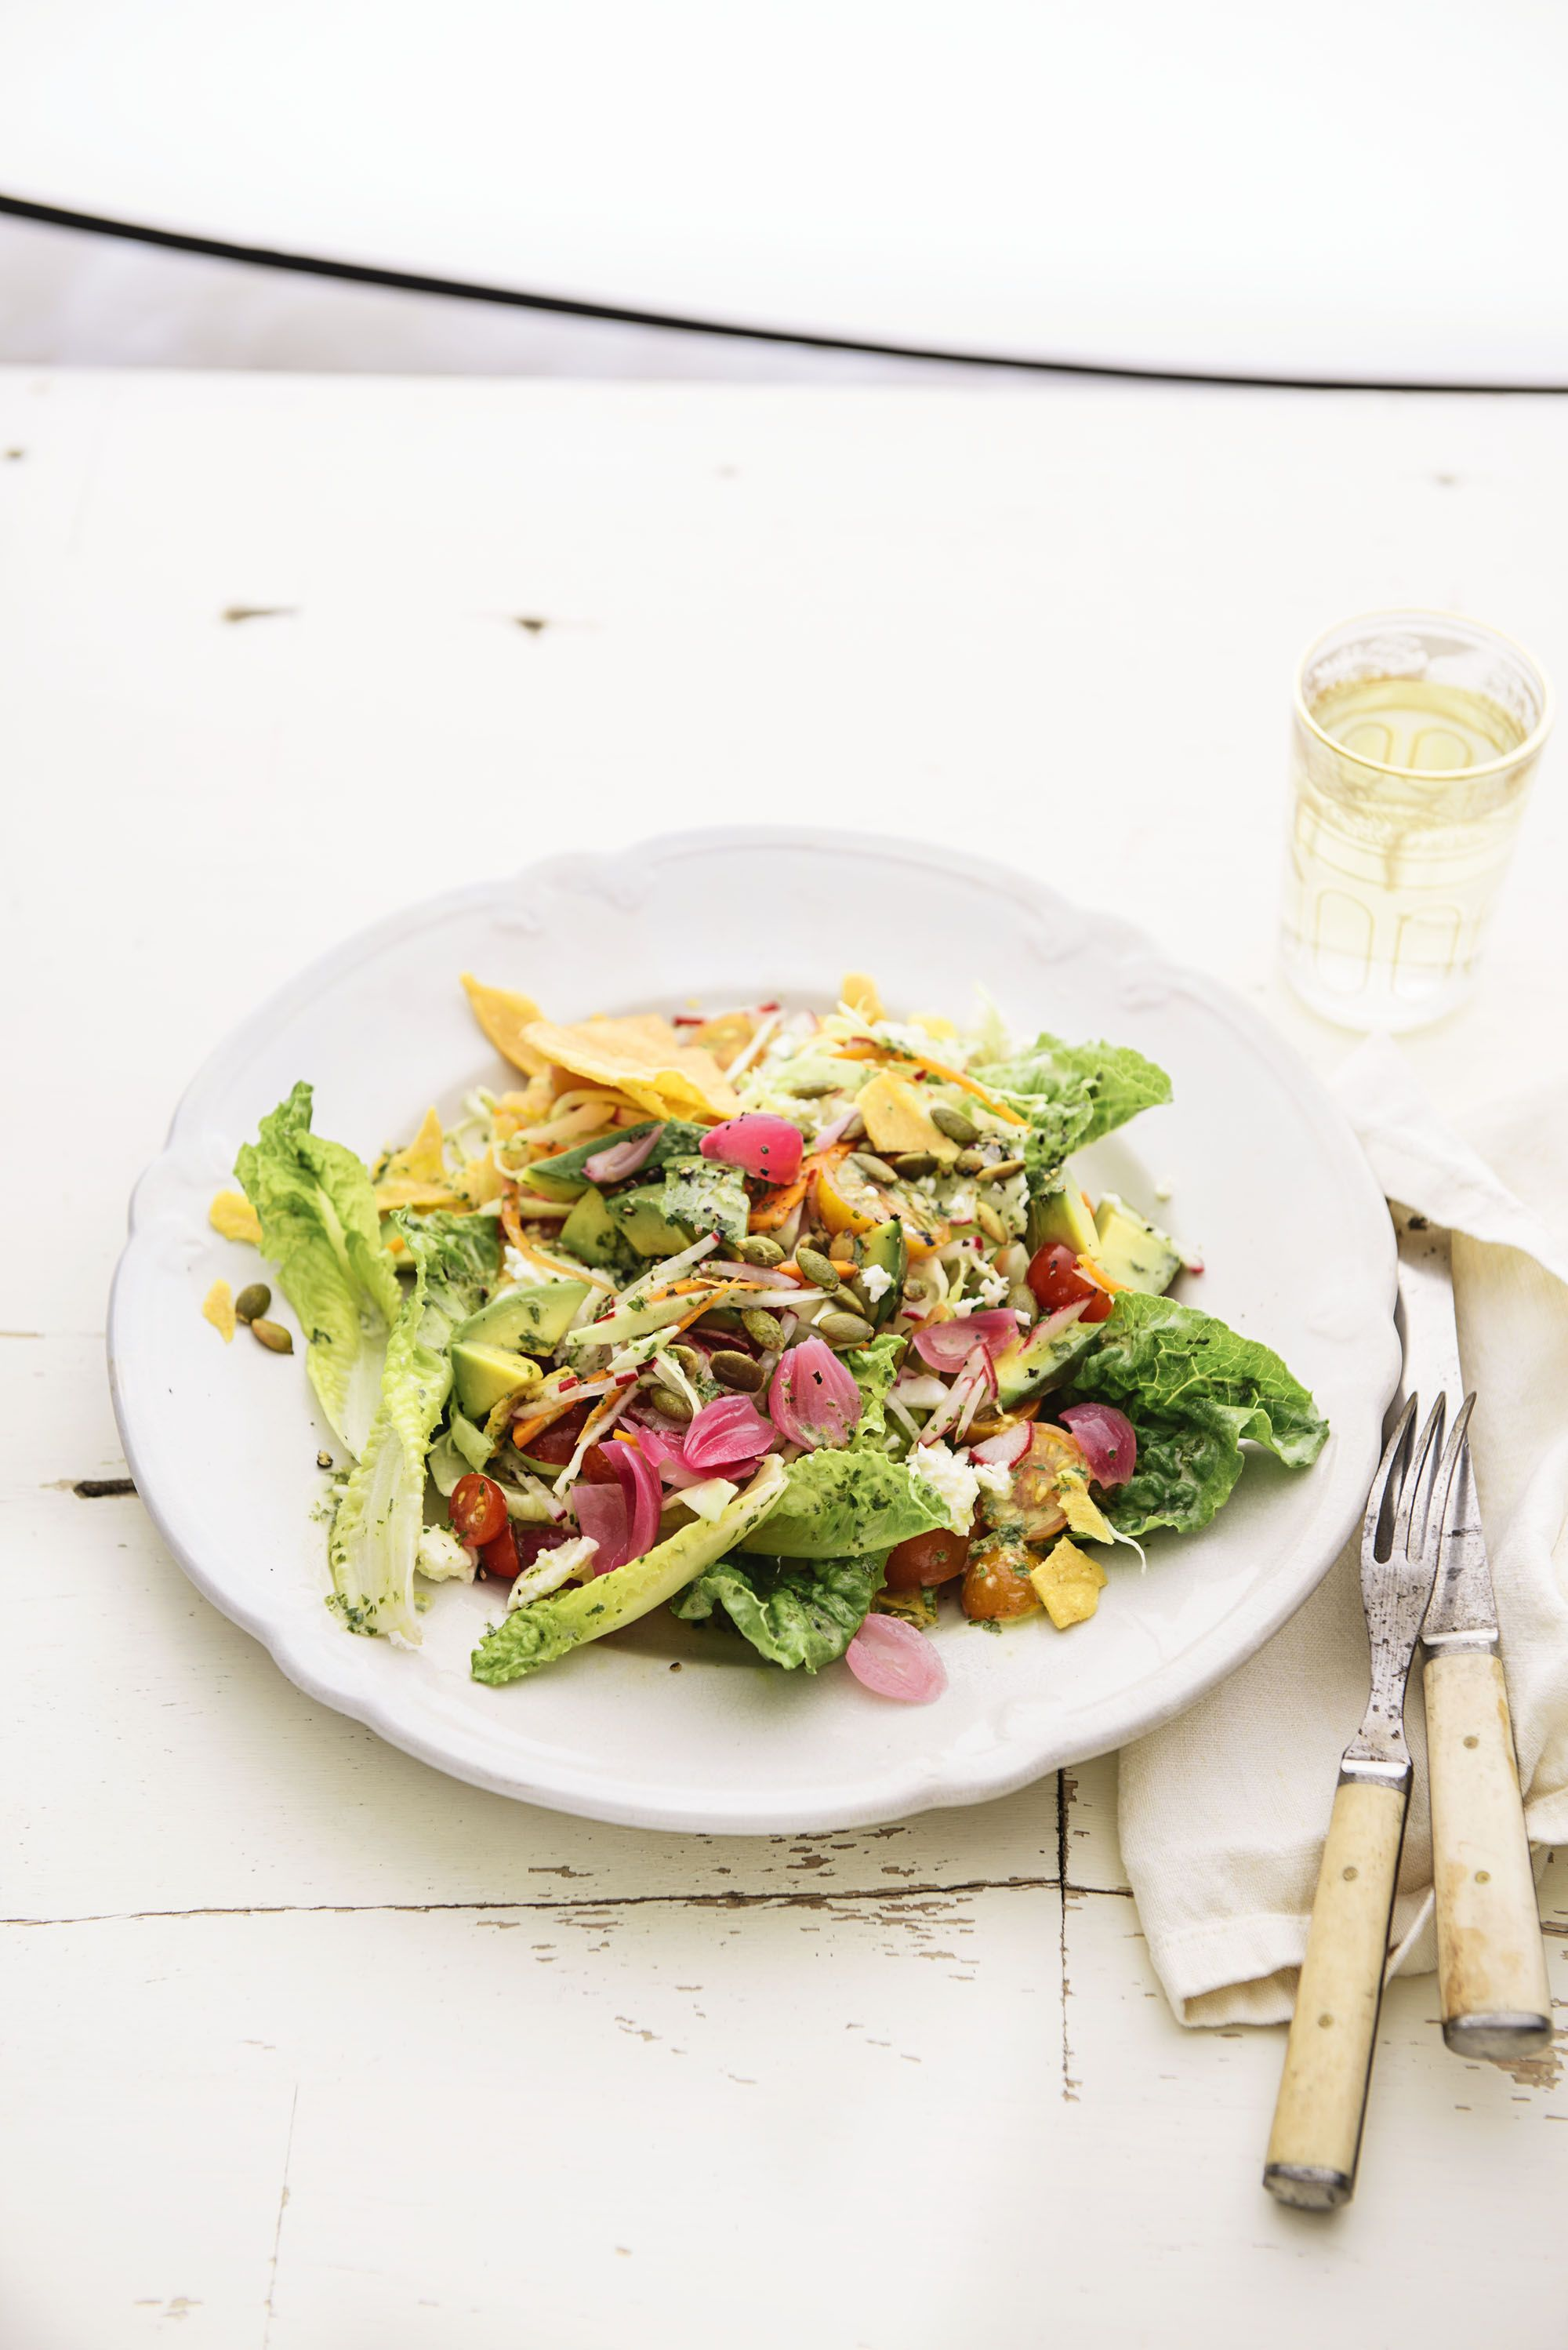 24 Best Healthy Salad Recipes - How to Make Easy Healthy Salads